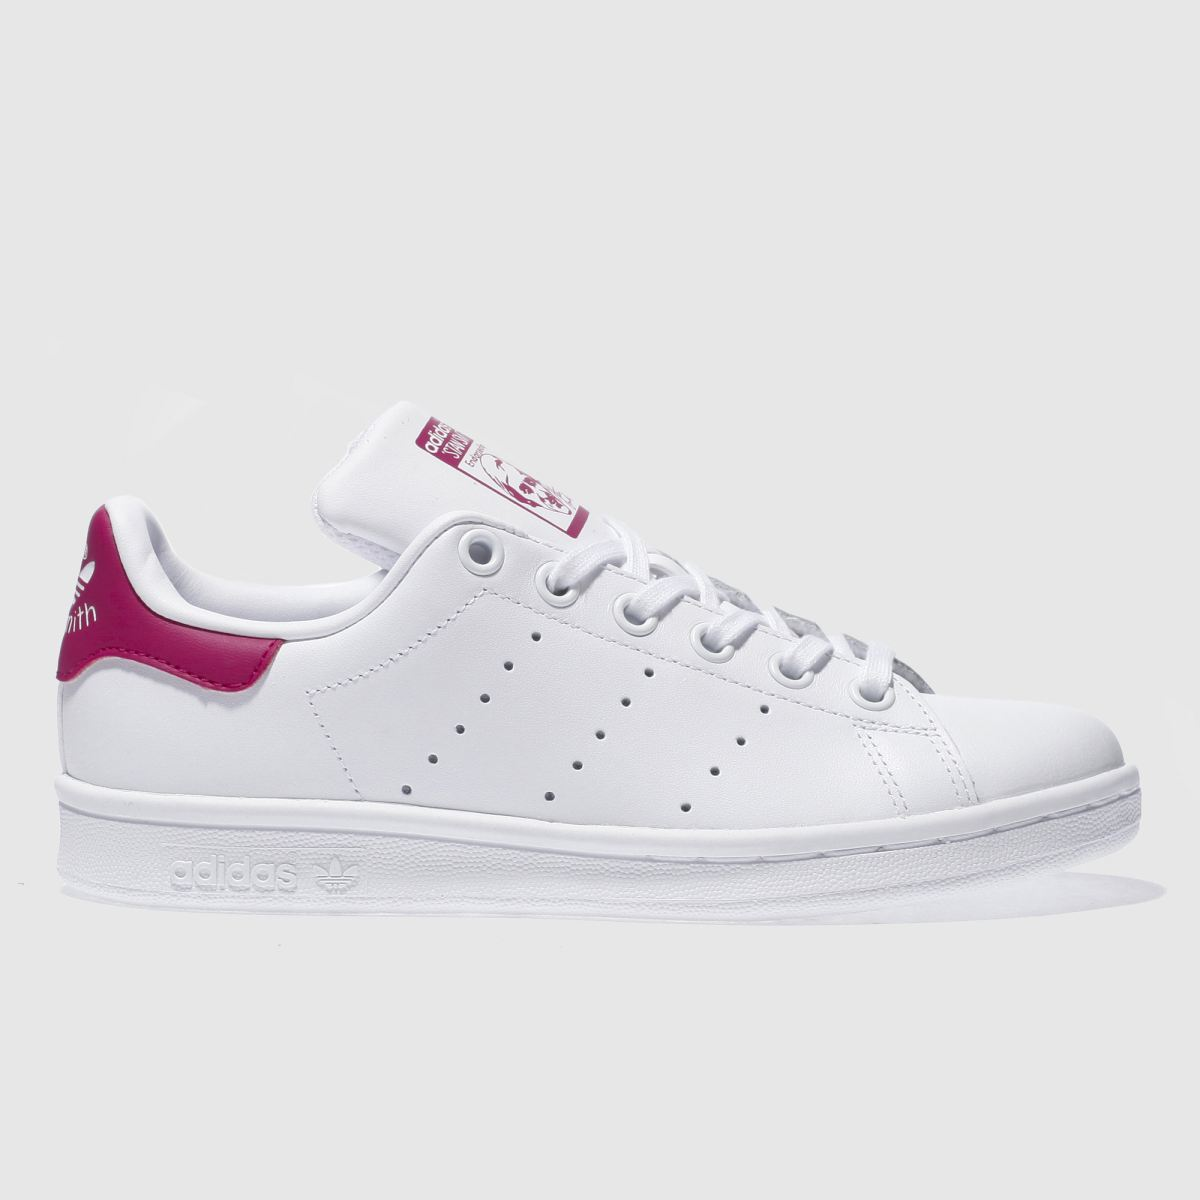 adidas white & pink stan smith Girls Youth Trainers